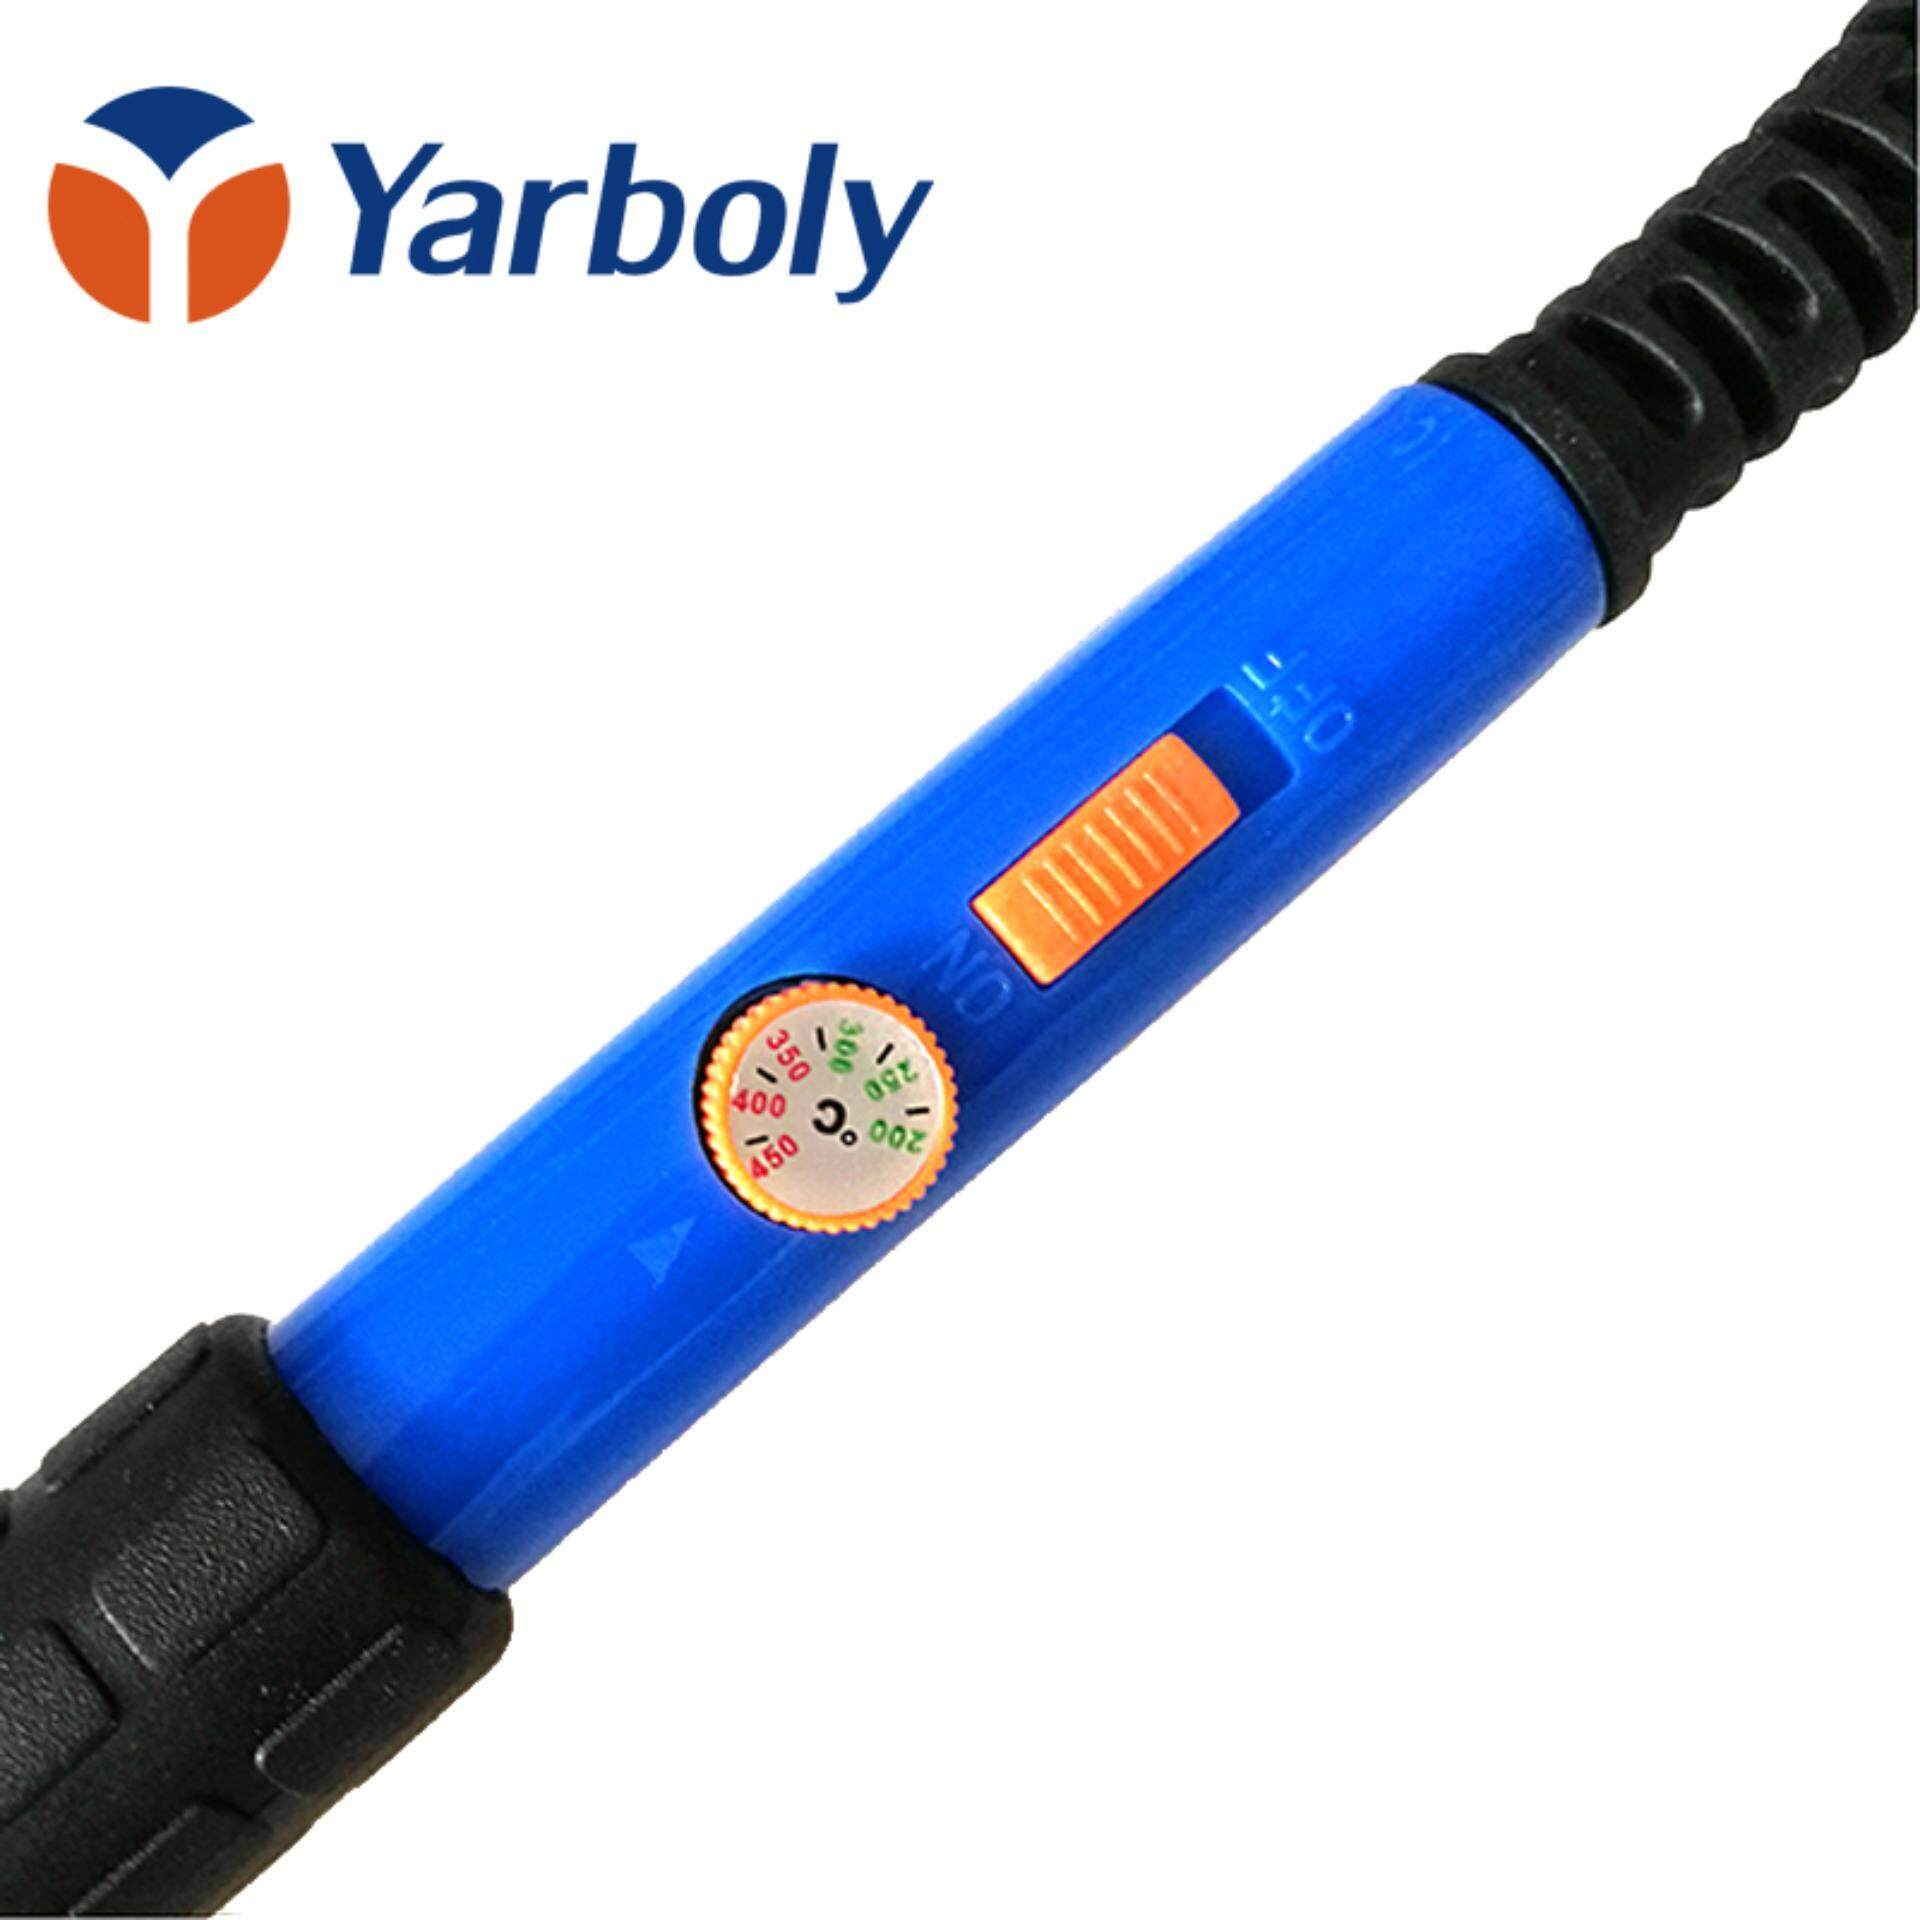 Electric Solder Soldering Iron Temperature Adjustable Pen HandleWelding Station Repair Tool 220V 60W EU Plug .